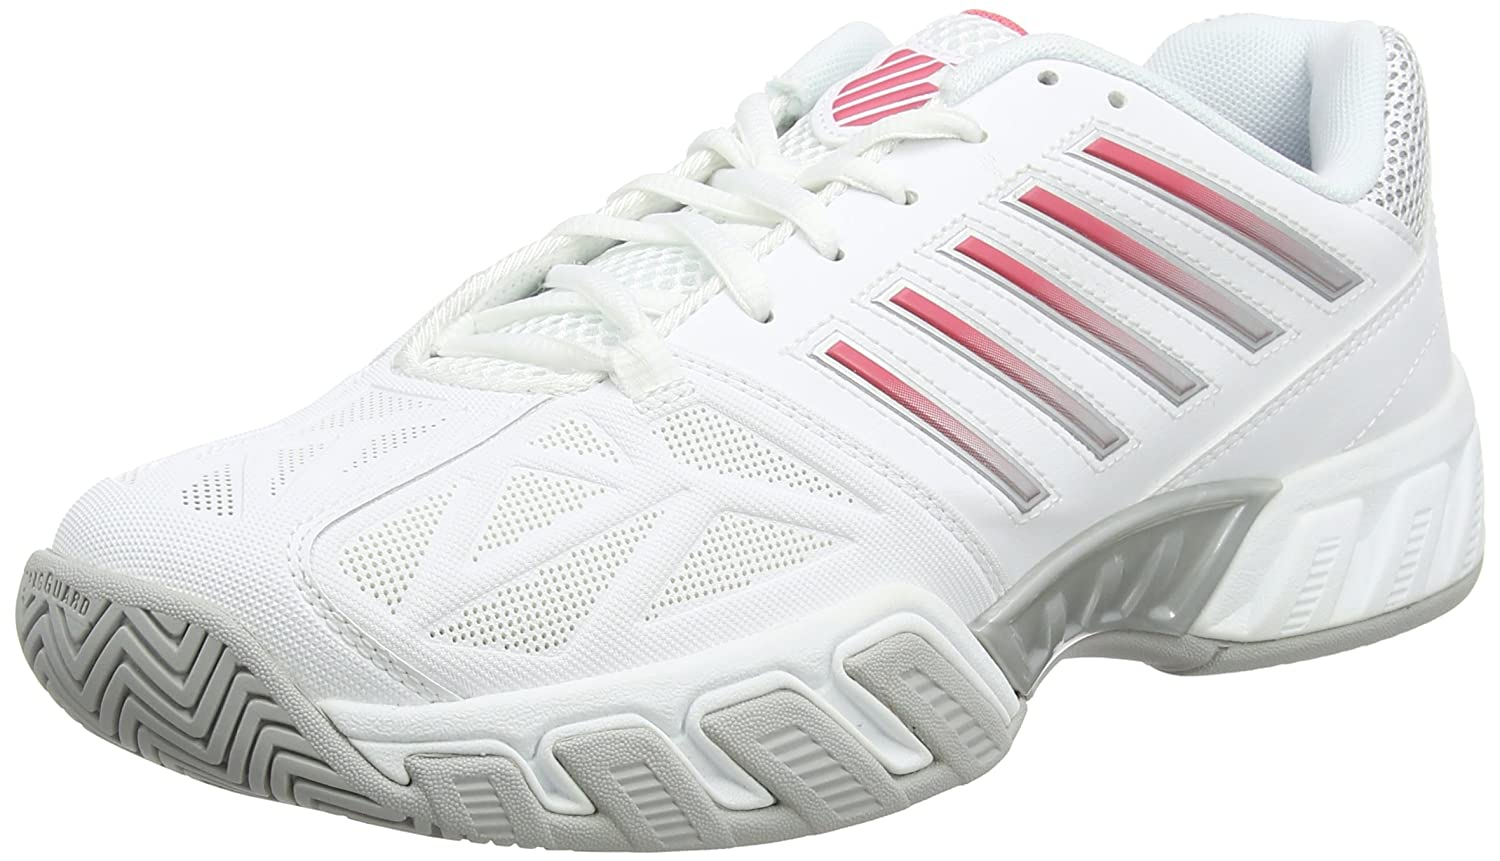 K-Swiss Tennis Bigshot Light 3 Womens Tennis K-Swiss Shoe B06XZ37HL4 11 B(M) US|White/Calypso Coral ab92c4